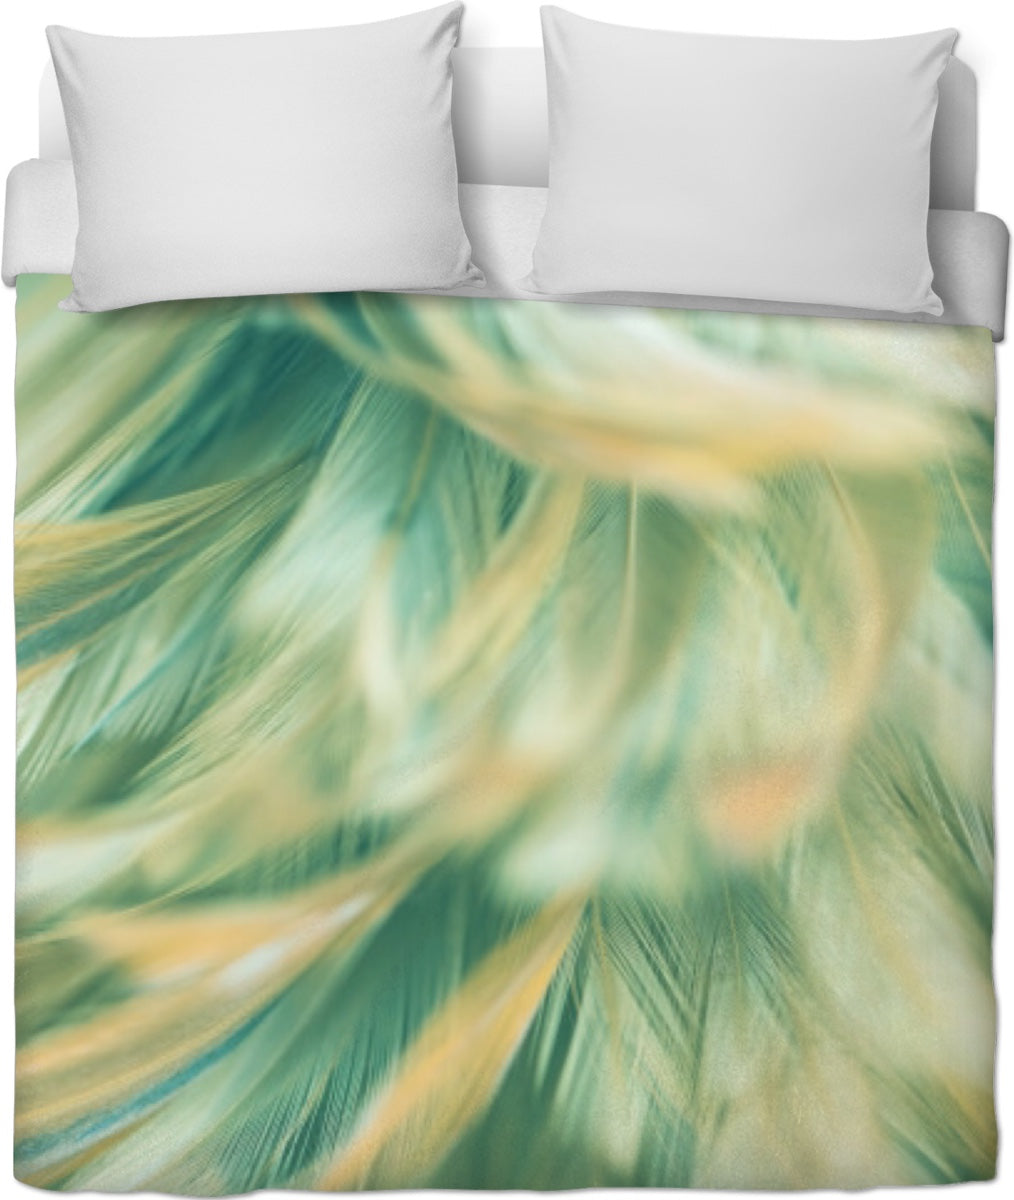 Green Feathered Duvet Cover